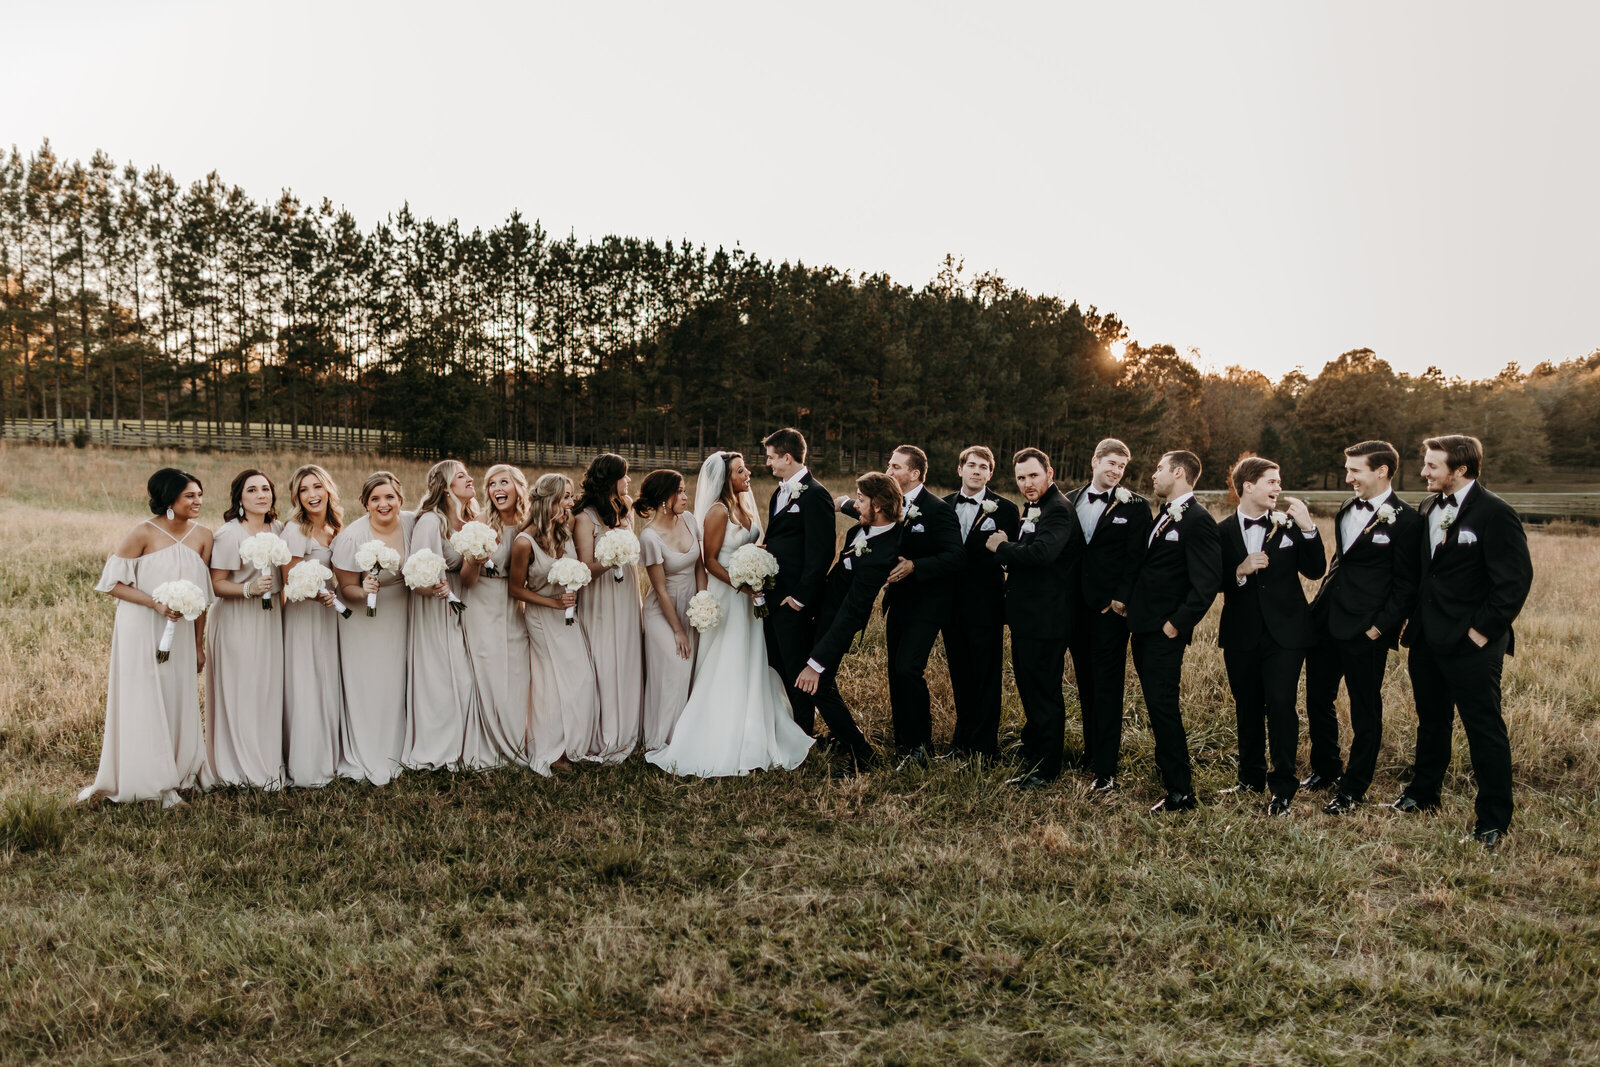 J.Michelle Photography photographs bridal party  at vintage oaks farm wedding in Athens, Ga